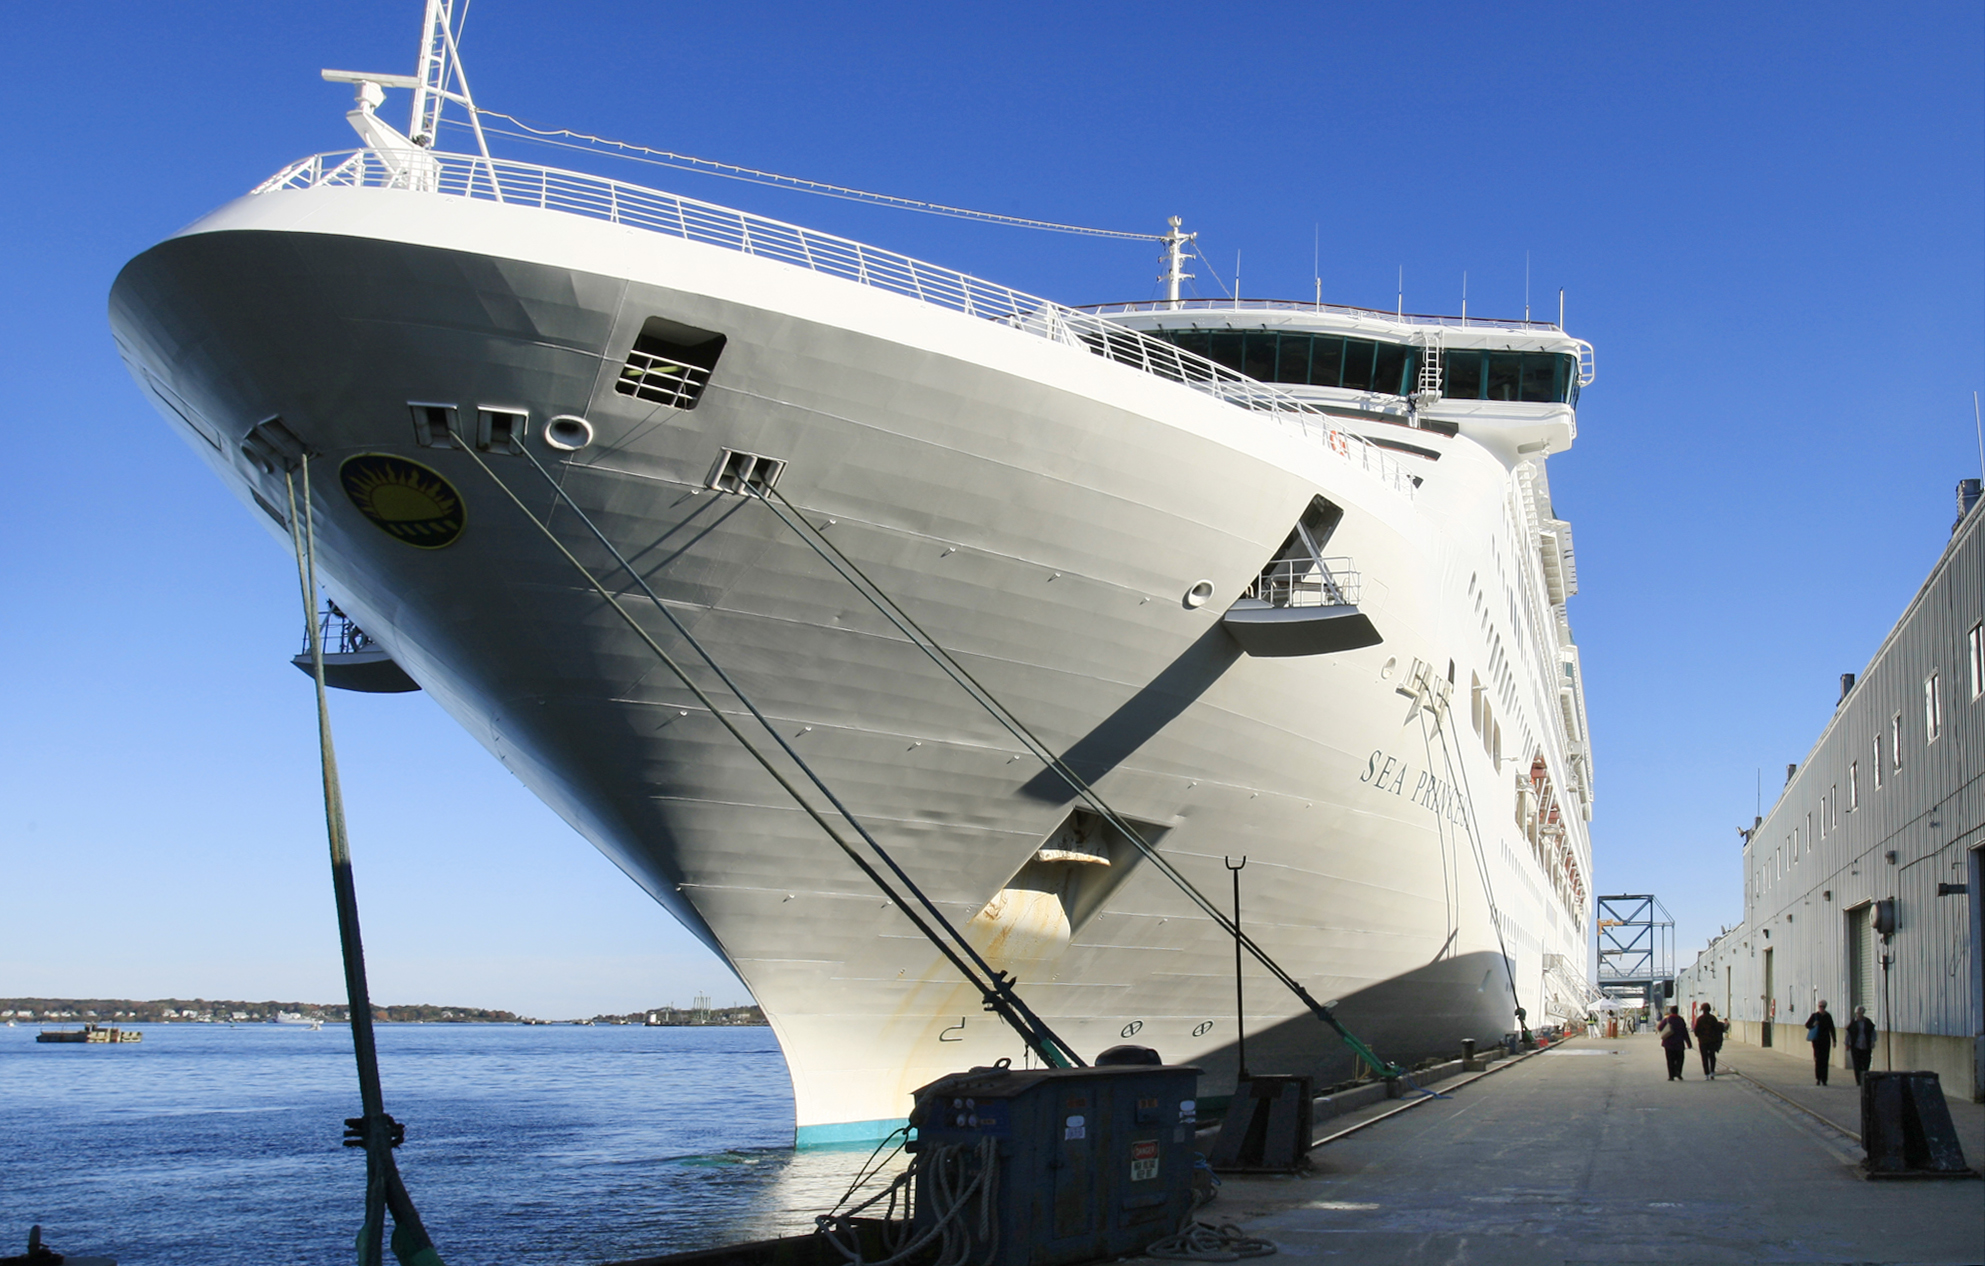 Sea Princess Cruise Undergoes 10 Day Blackout for Fear of Pirates ...